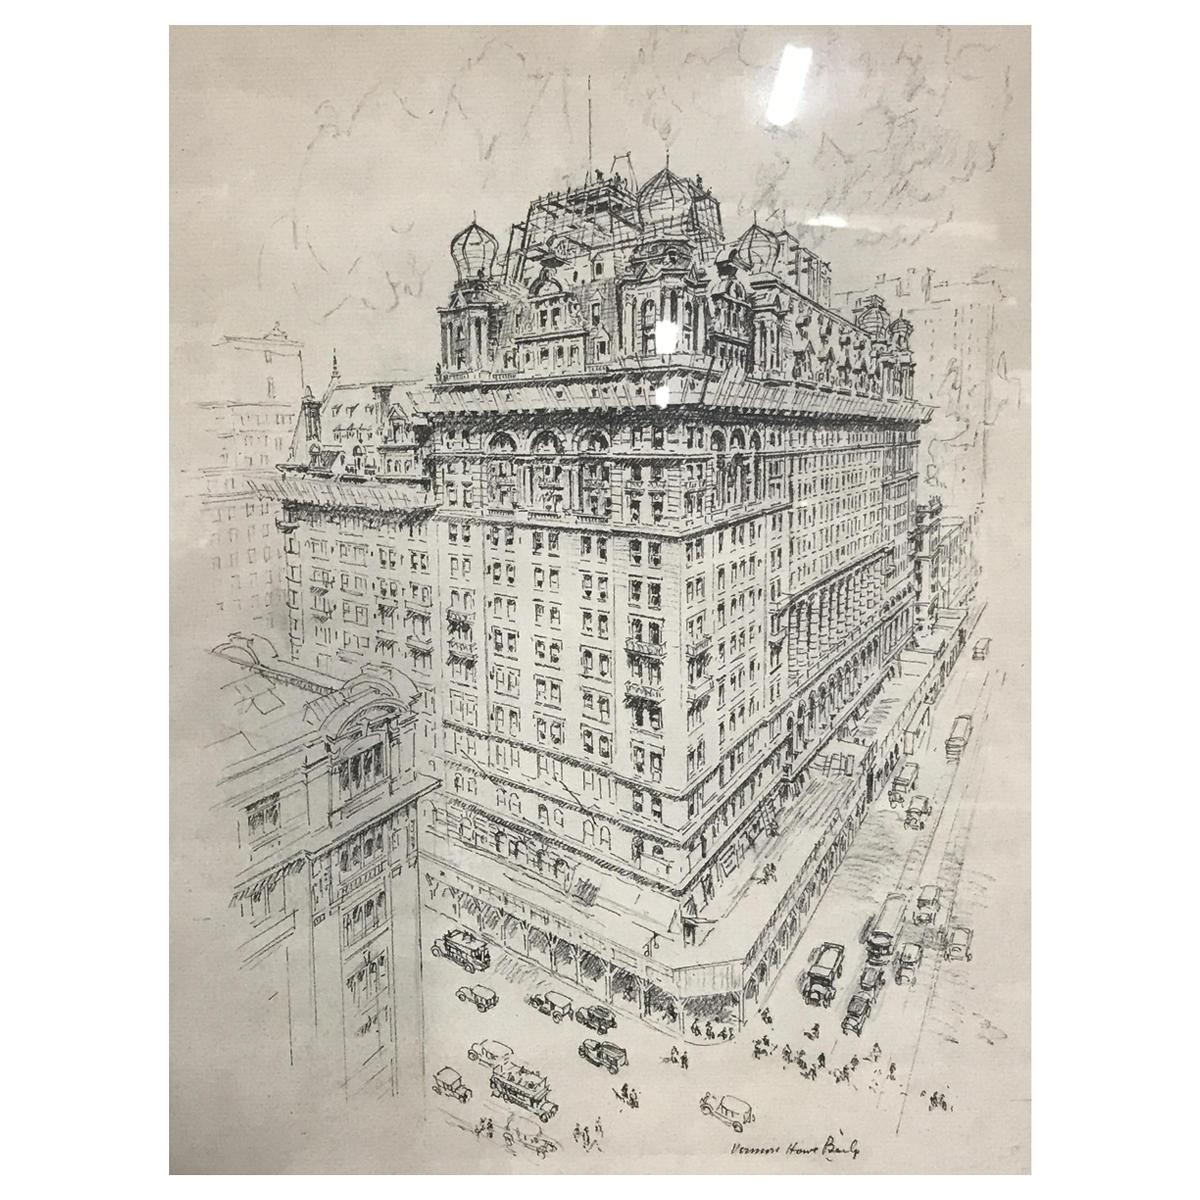 Signed Lithograph of a Cityscape, A New York City Building